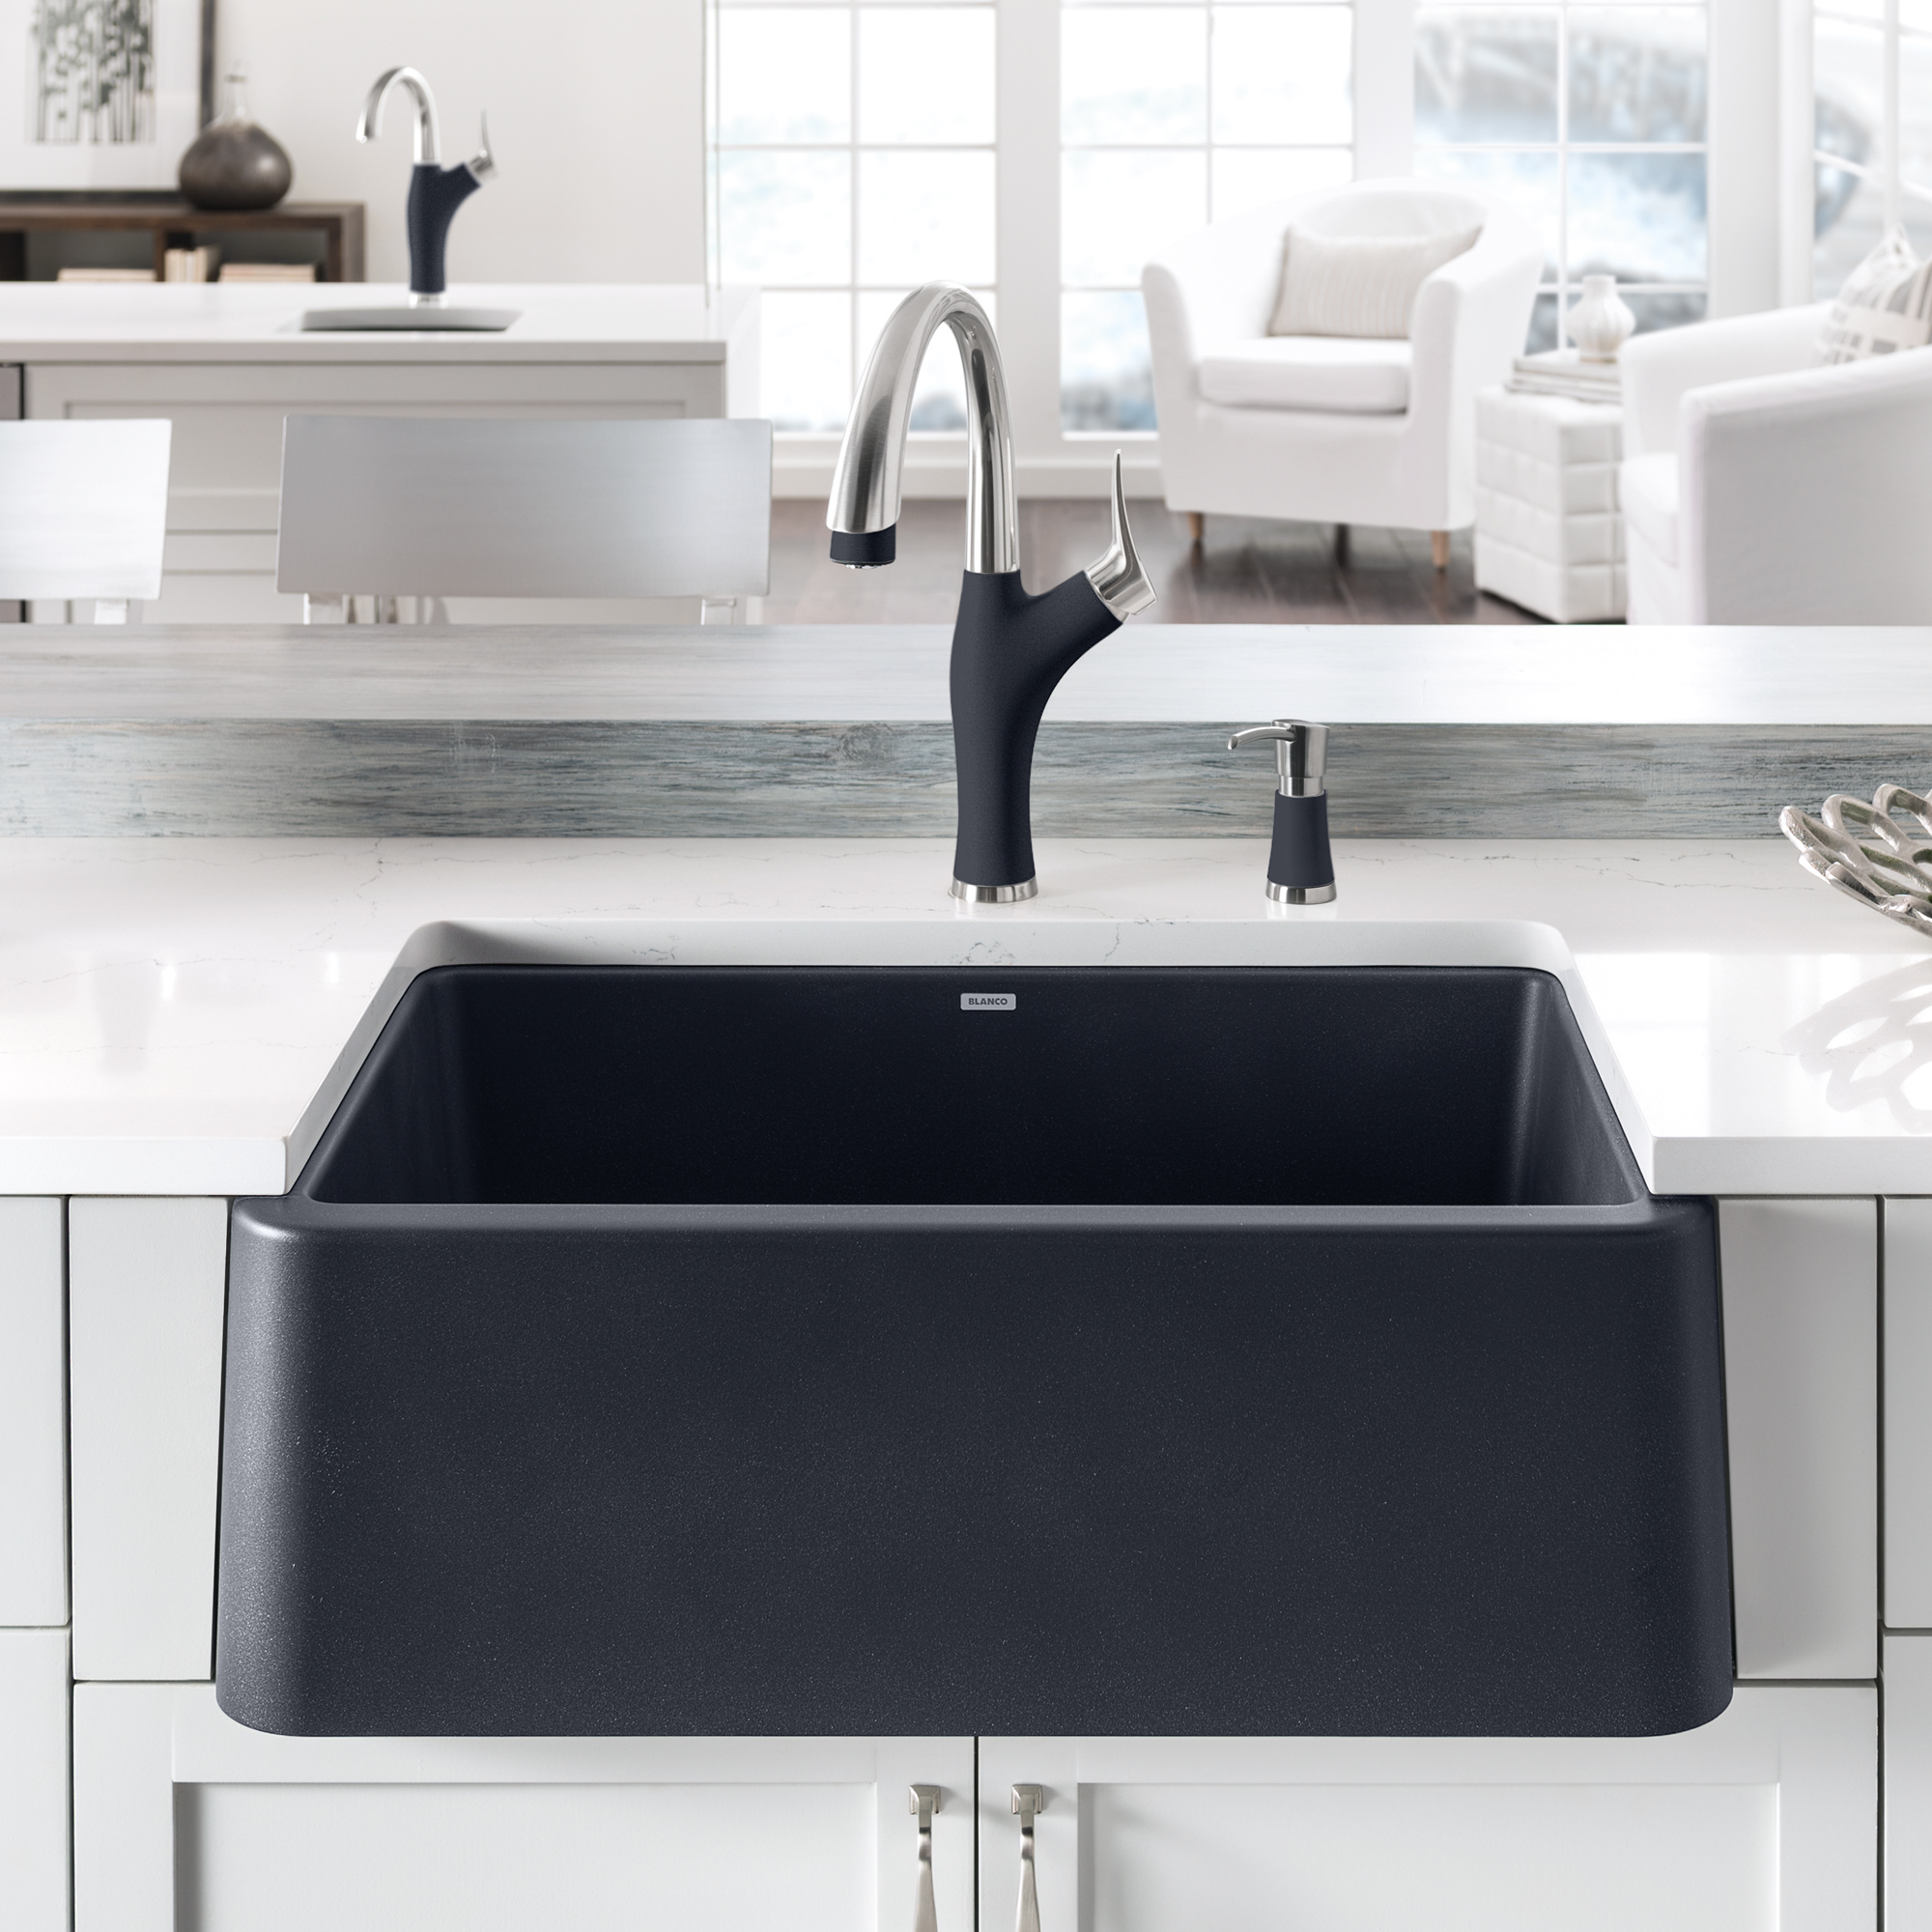 Blanco Ikon Farmhouse Kitchen Sink 30 In Black Lowe S Canada